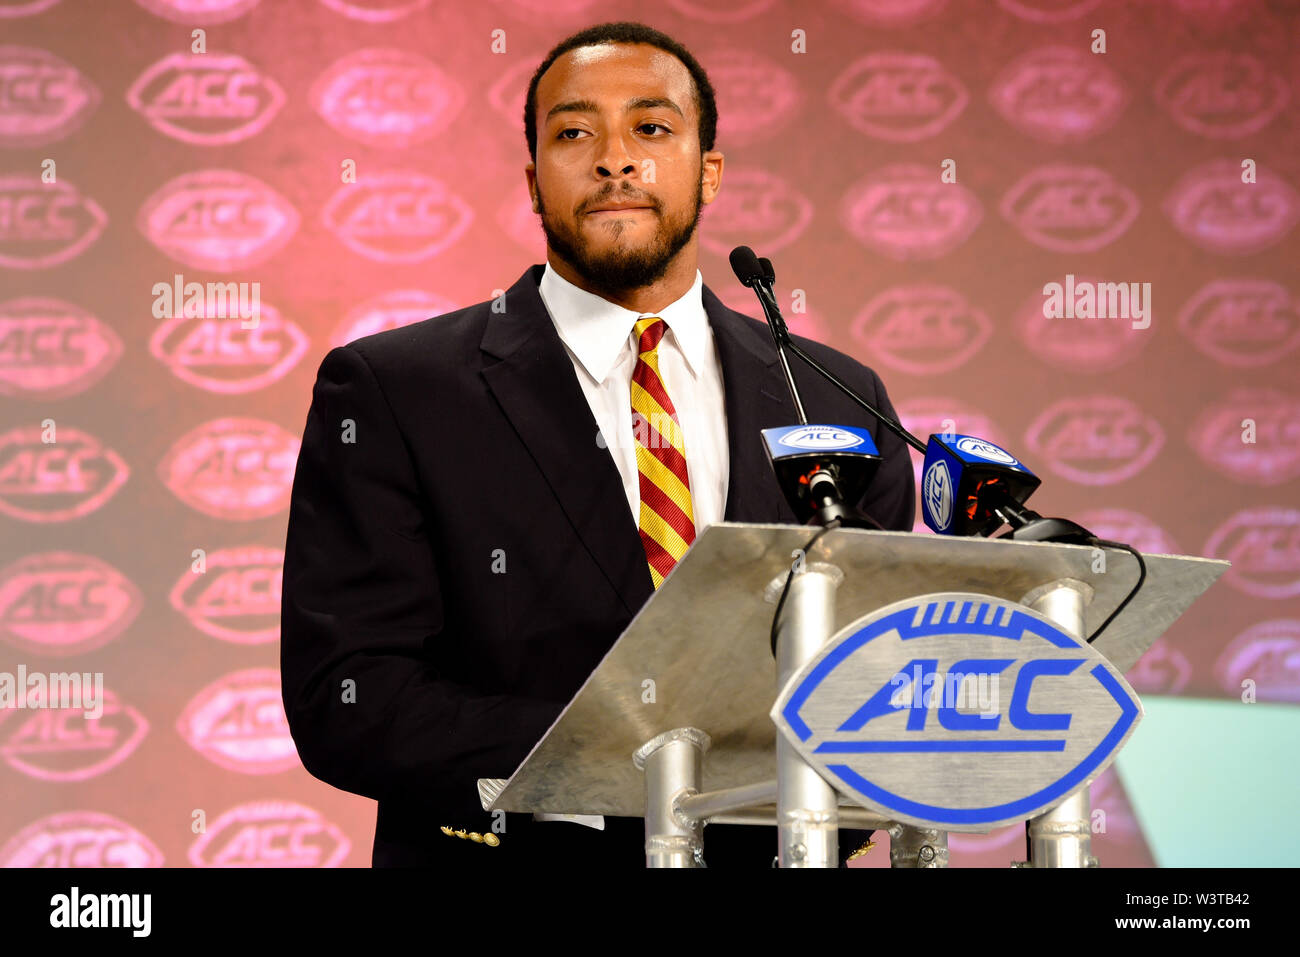 Charlotte, North Carolina, USA. 17th July, 2019. Boston College AJ Dillon (RB) speaking to reporters during the ACC Atlantic Division Coach/Student interviews on July 17, 2019 at the Westin Hotels & Resorts in Charlotte, N.C. Credit: Ed Clemente/ZUMA Wire/Alamy Live News - Stock Image